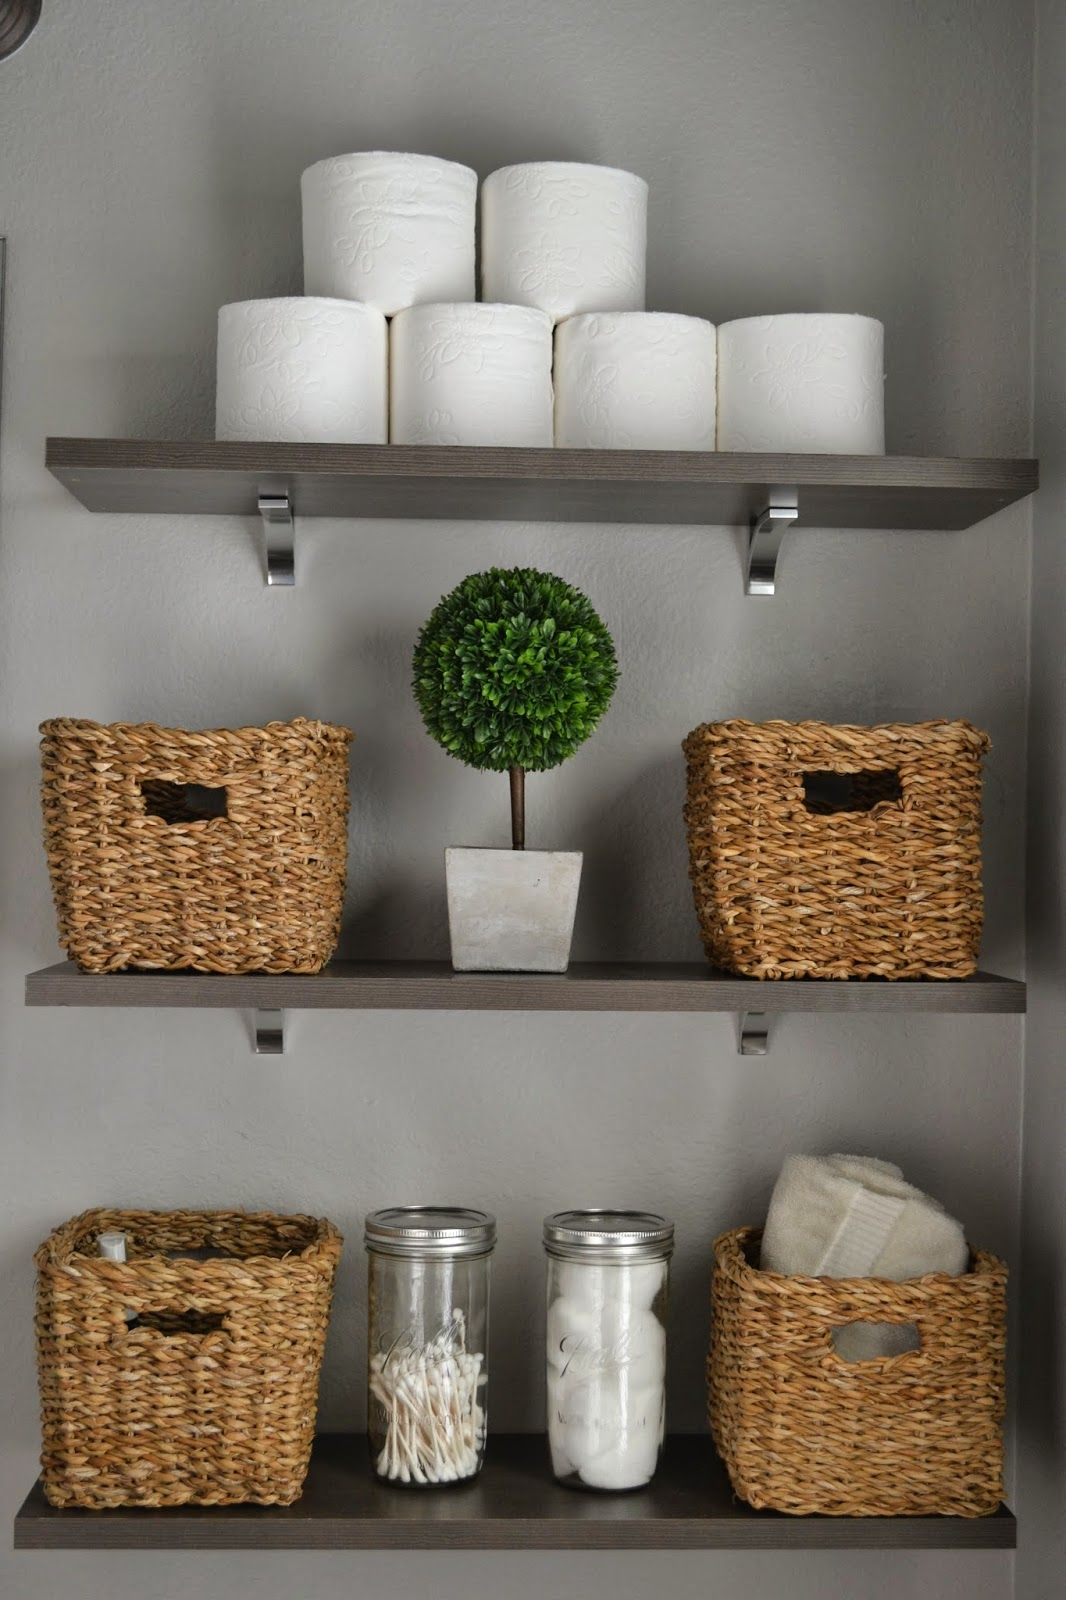 Take Toilet Paper Out Of The Plastic And Stack Them Baskets And - Best over the toilet storage for small bathroom ideas